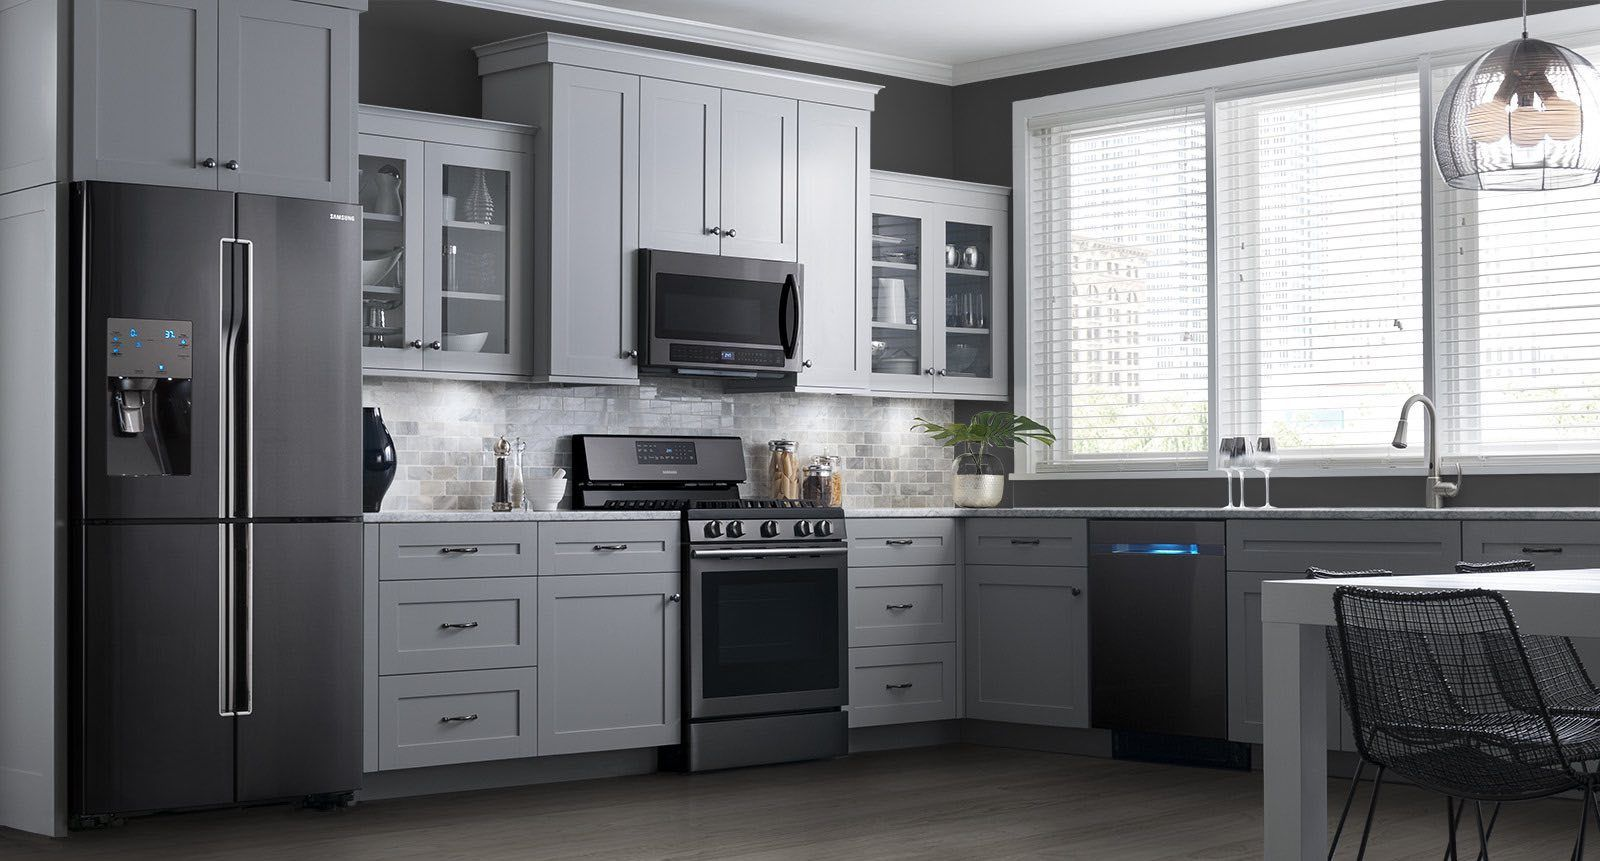 Picture Of Dark Grey Wall Light Grey Cabinet Finish Black Appliances - Dark grey cupboards